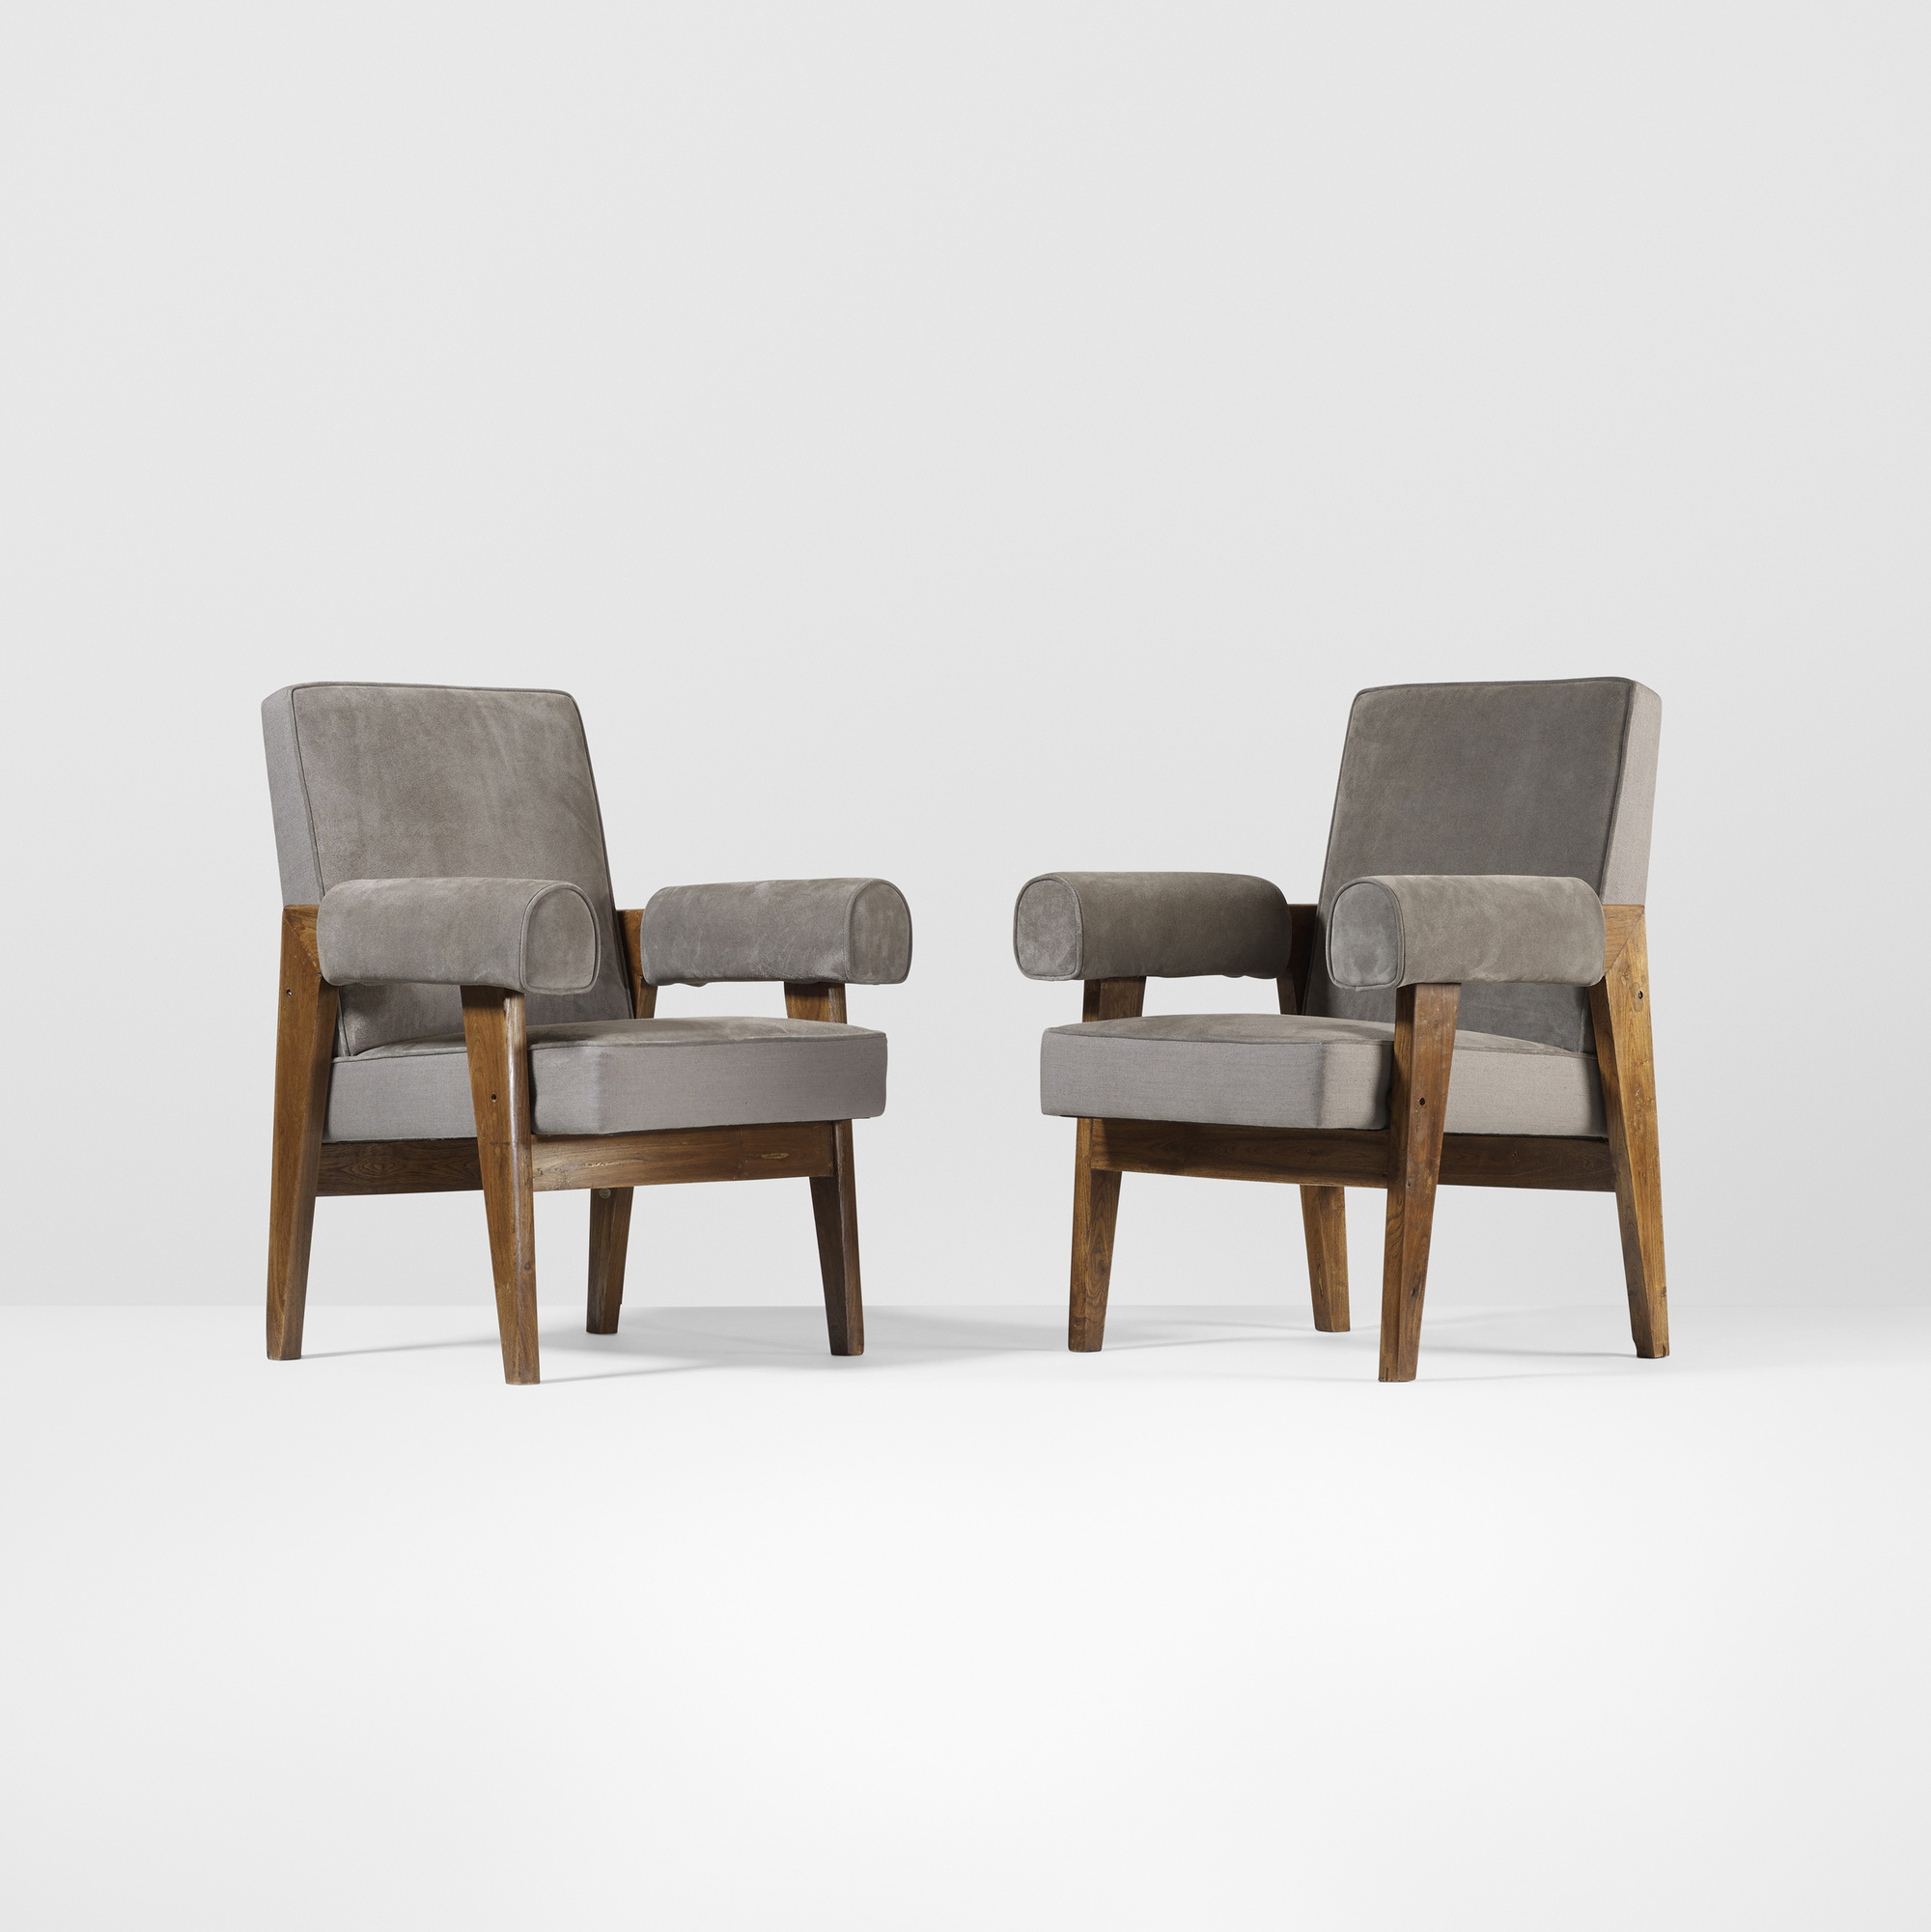 100: Le Corbusier and Pierre Jeanneret / pair of armchairs from ...